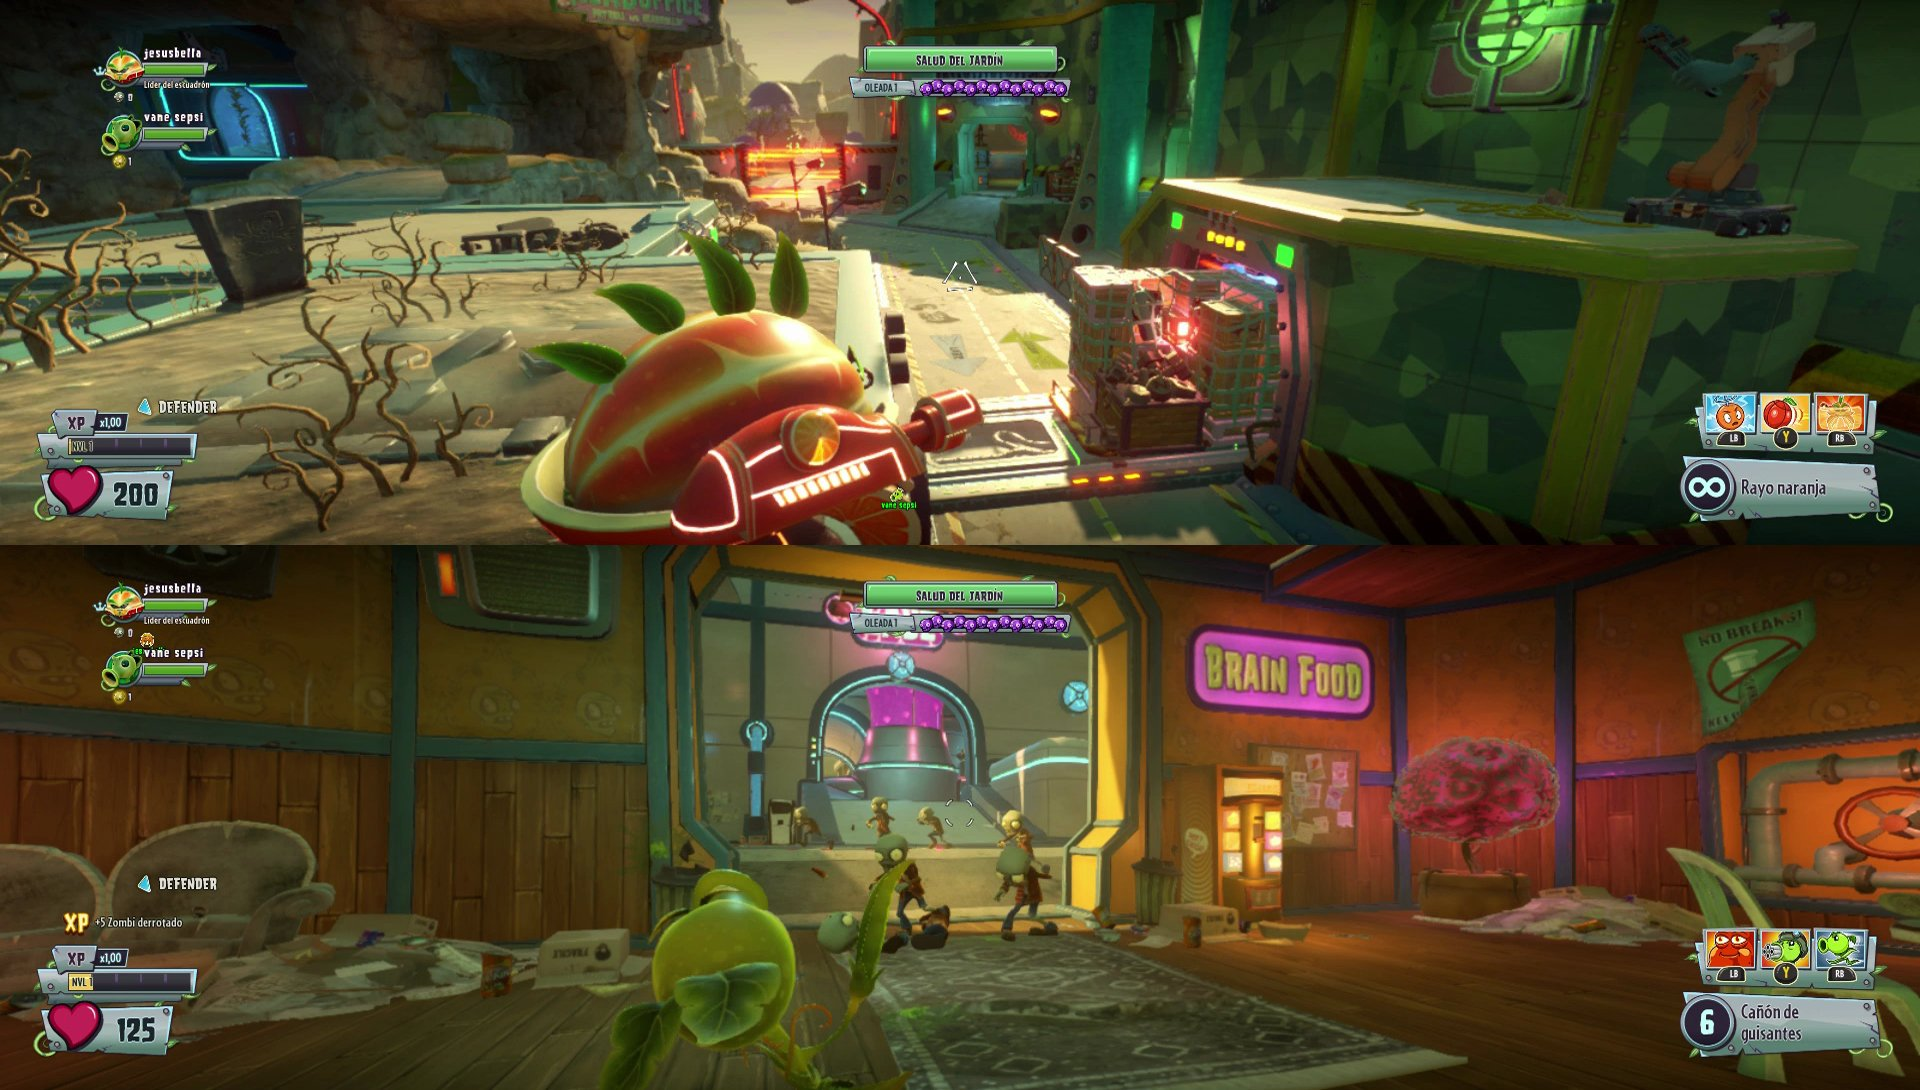 Análisis de Plants vs. Zombies Garden Warfare 2 para Xbox One - 3DJuegos